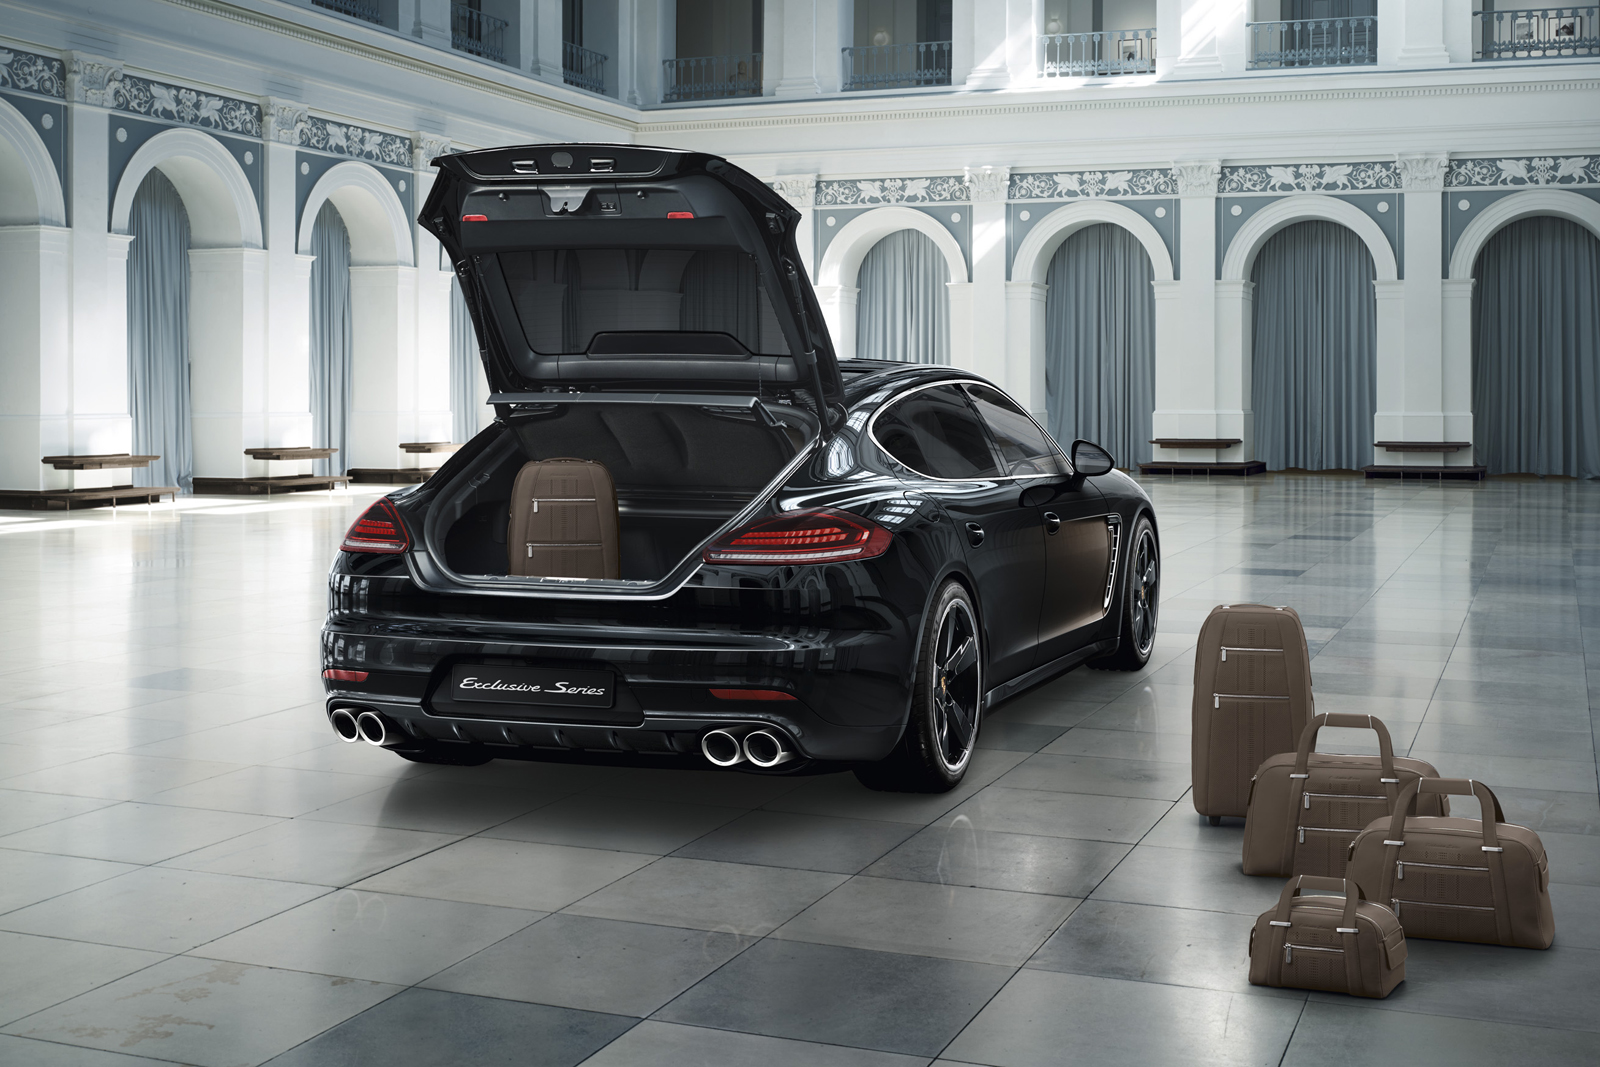 une porsche panamera neuve presque 250000 oui c 39 est possible. Black Bedroom Furniture Sets. Home Design Ideas